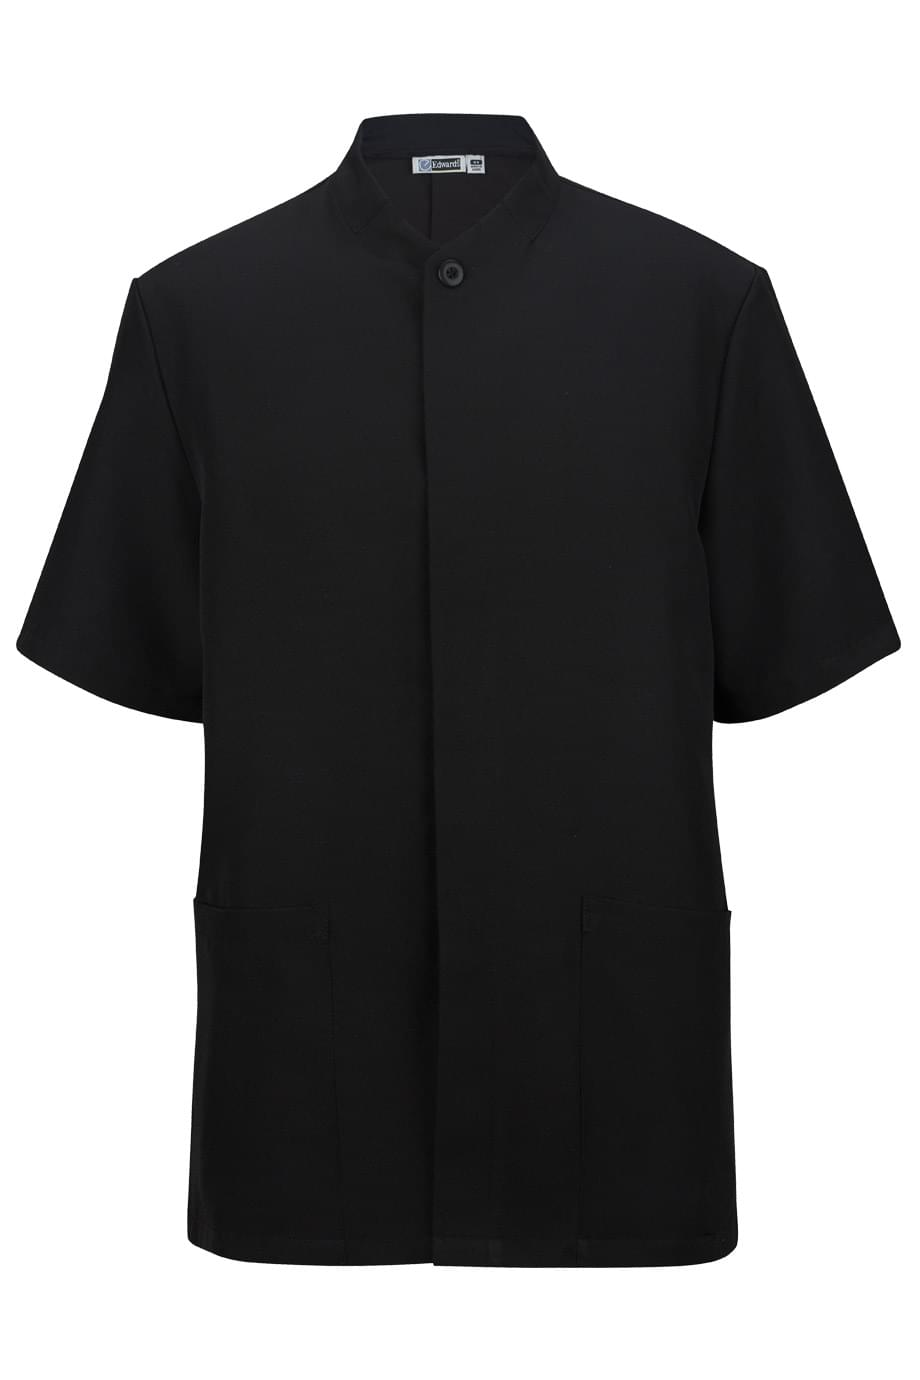 ESSENTIAL POLYESTER SERVICE SHIRT